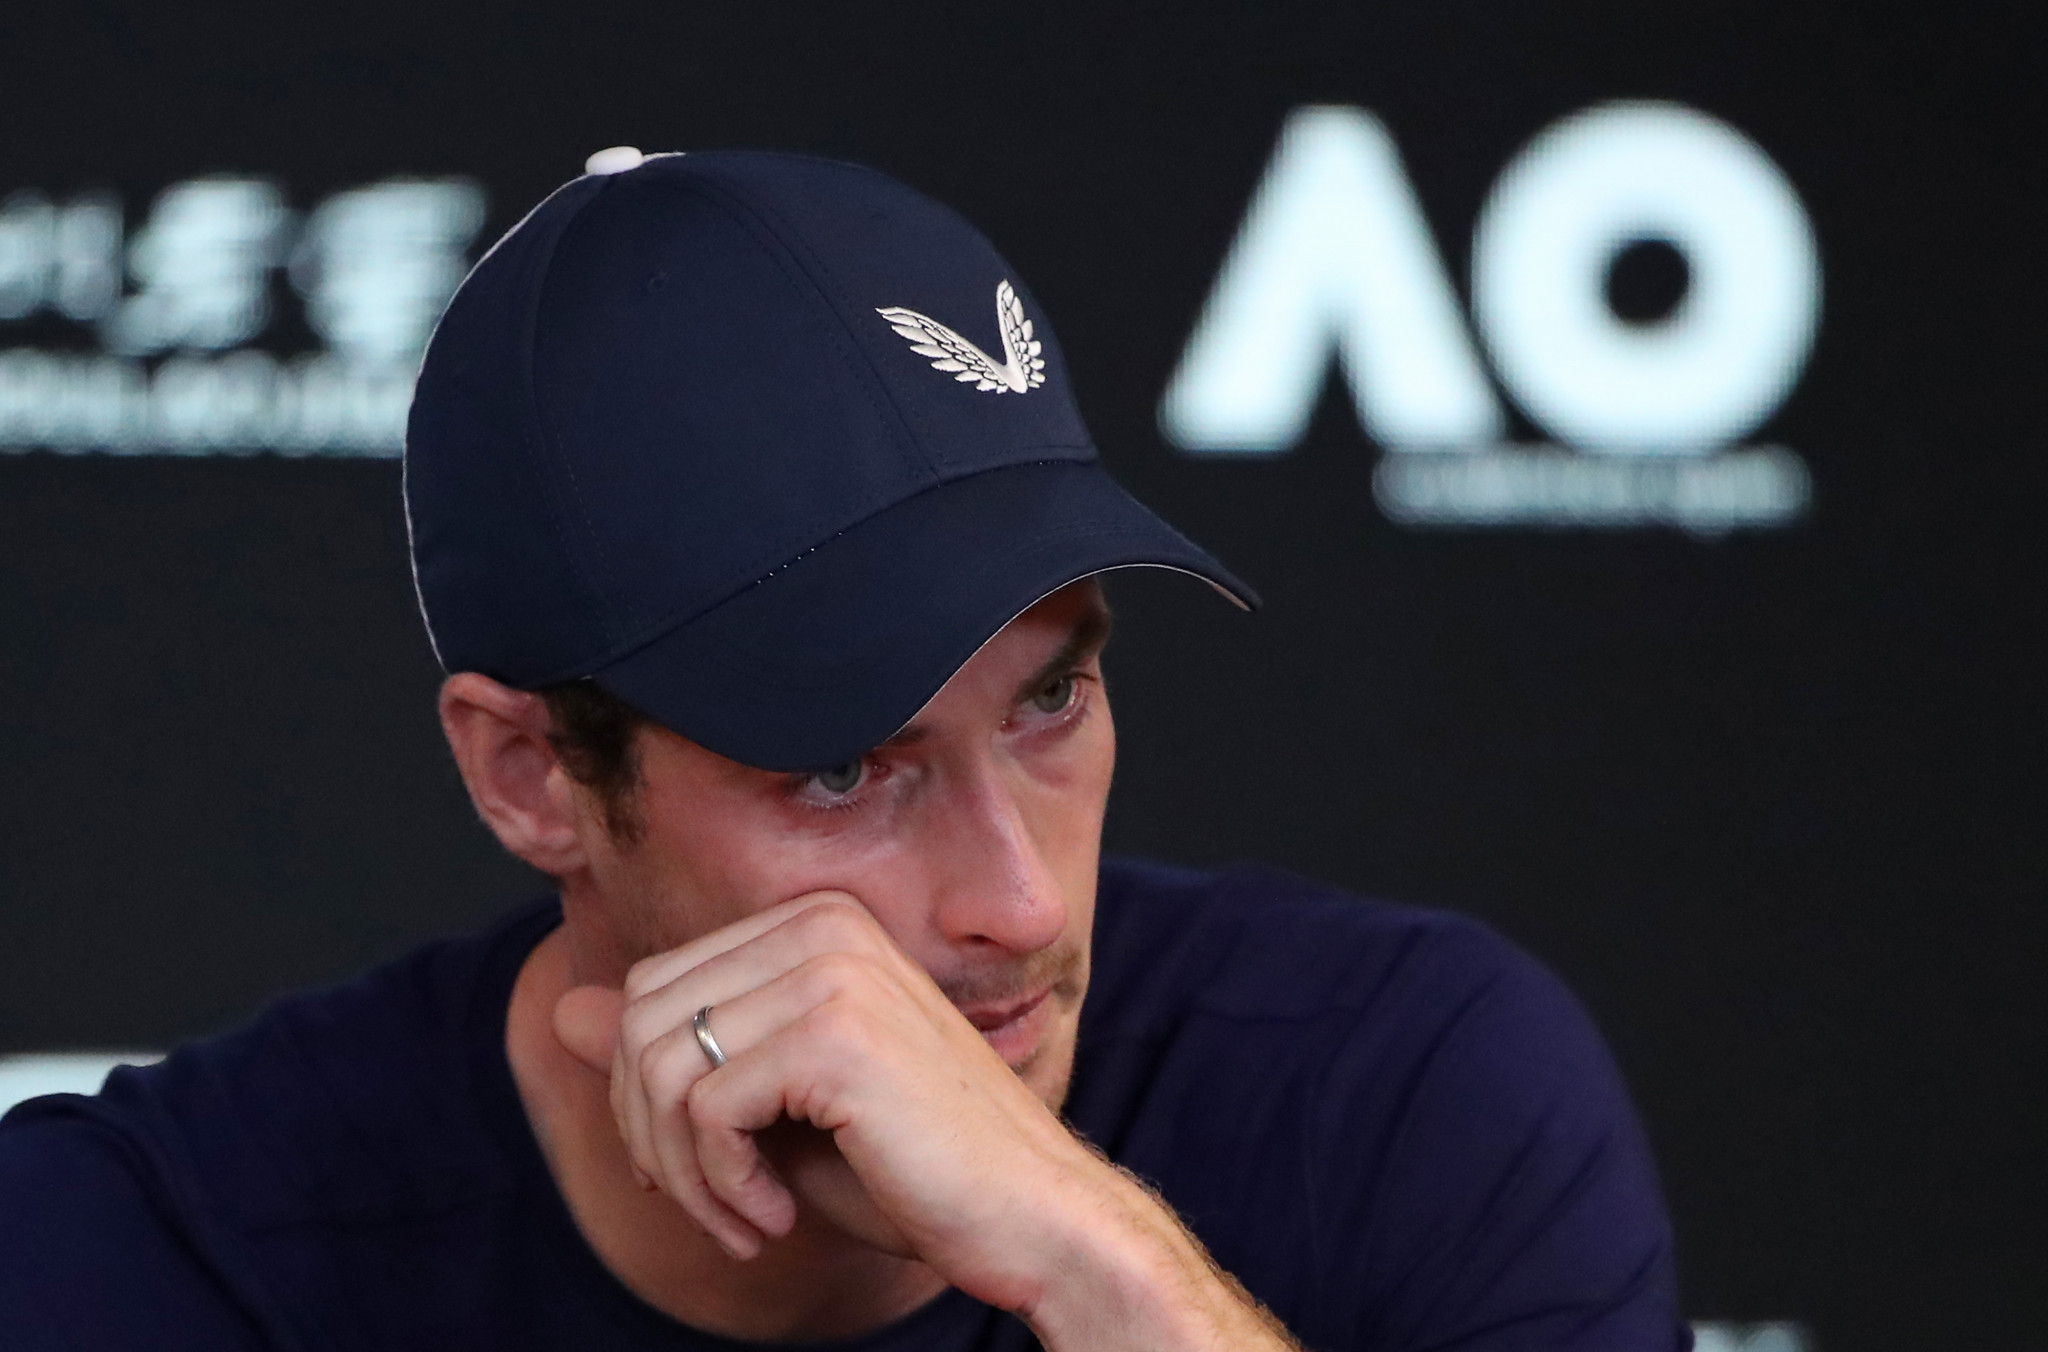 Andy Murray has announced he aims to retire from tennis at Wimbledon ©Getty Images